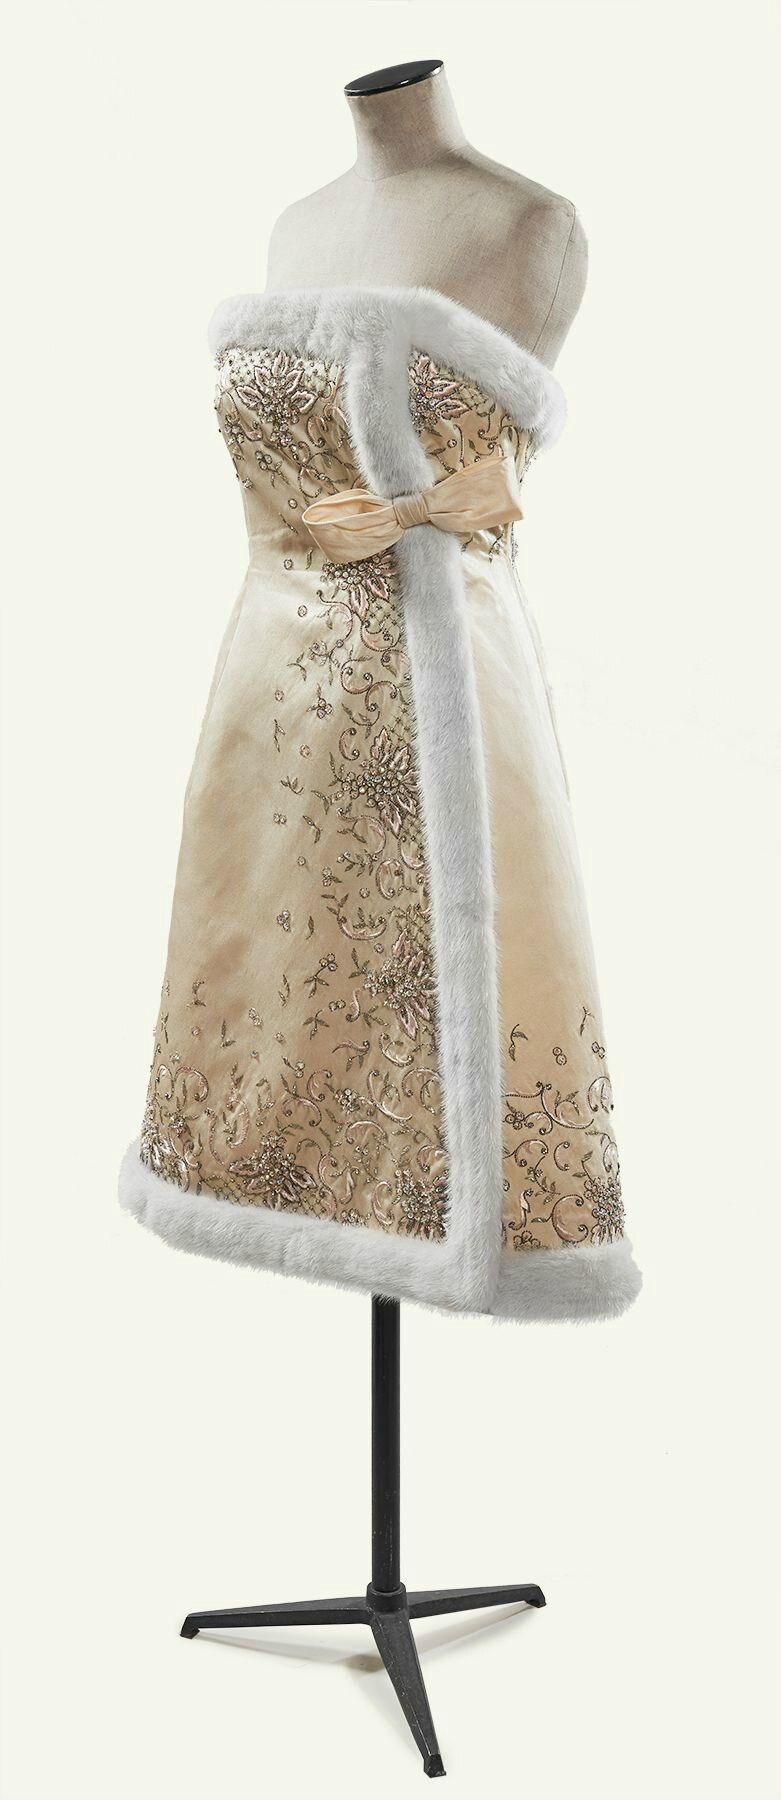 Jean PATOU Haute Couture, circa 1950-55. Robe de cocktail